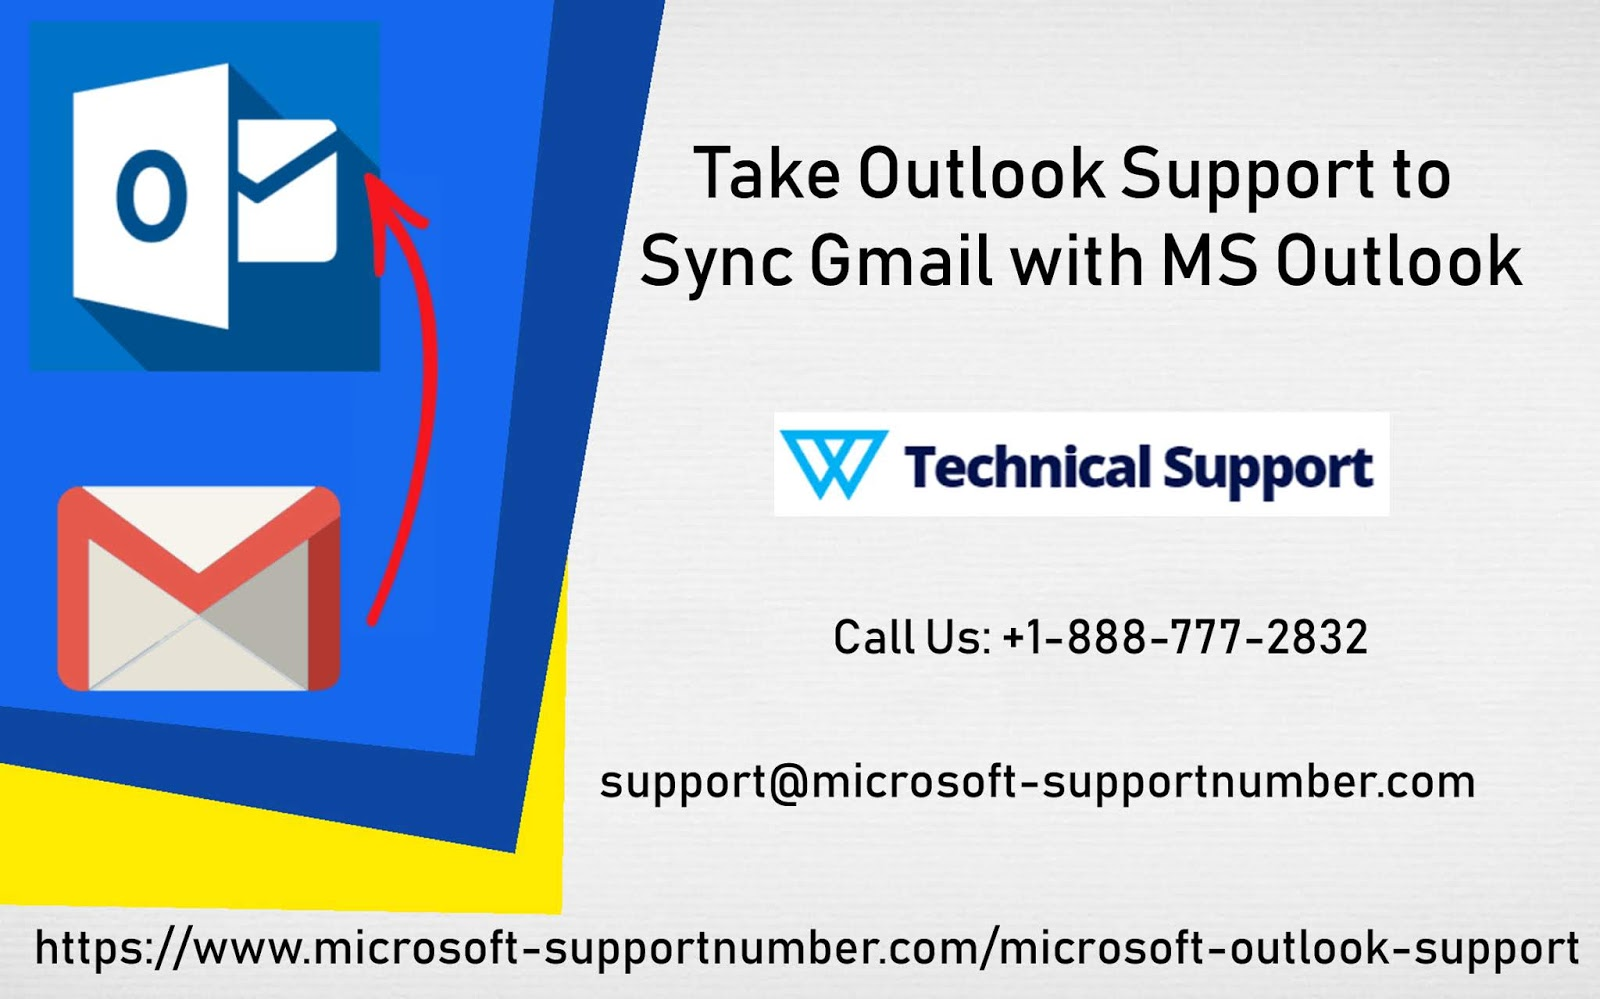 Take Outlook Support to sync Gmail with MS Outlook